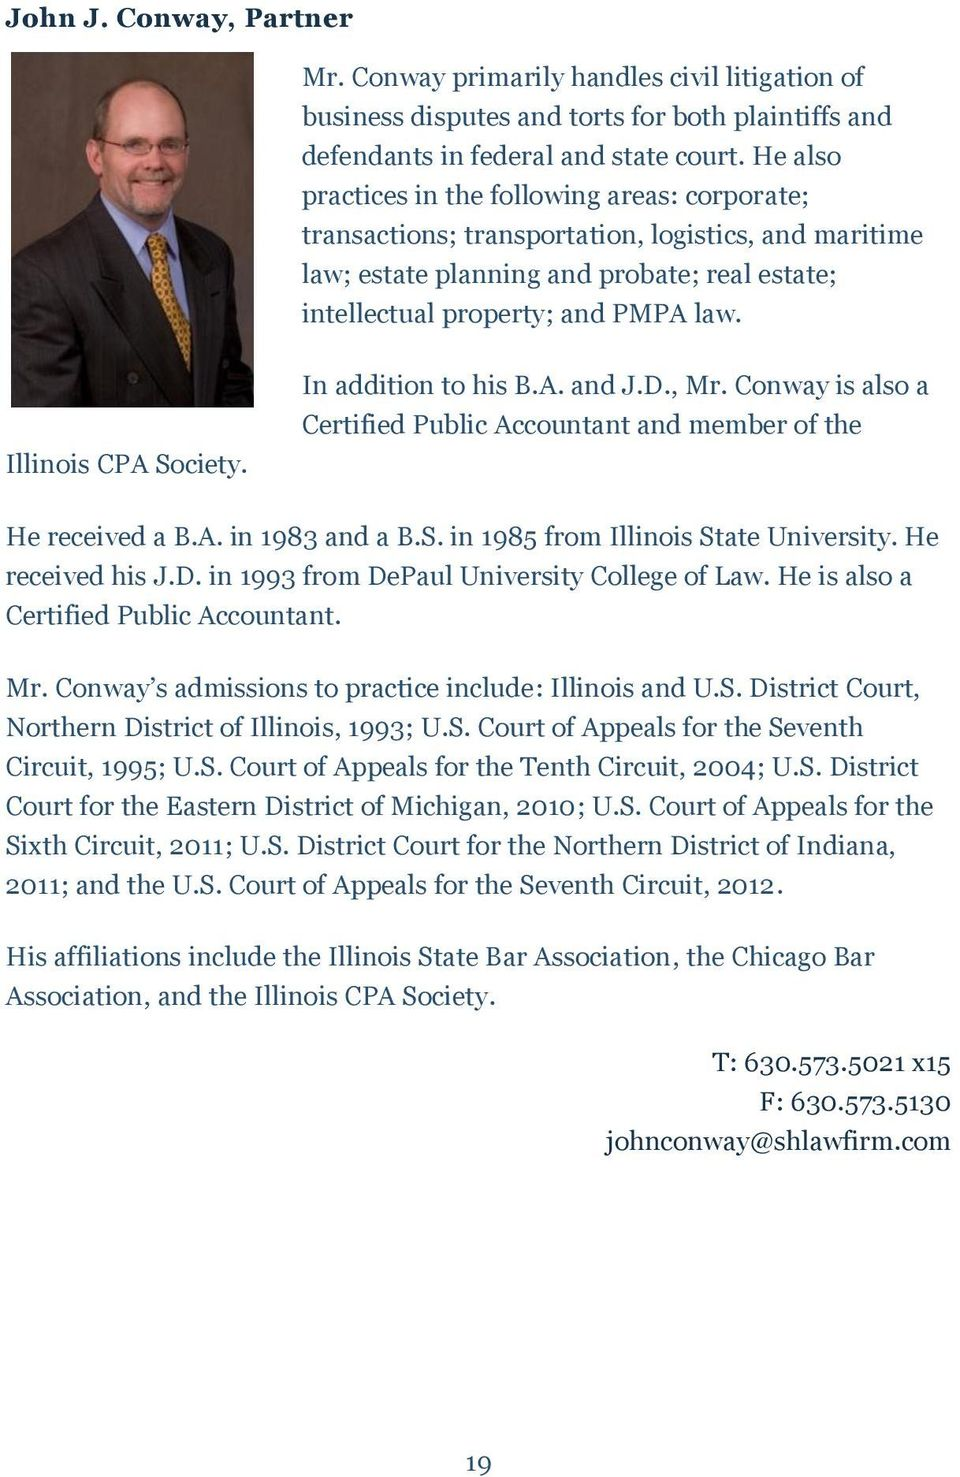 Illinois CPA Society. In addition to his B.A. and J.D., Mr. Conway is also a Certified Public Accountant and member of the He received a B.A. in 1983 and a B.S. in 1985 from Illinois State University.